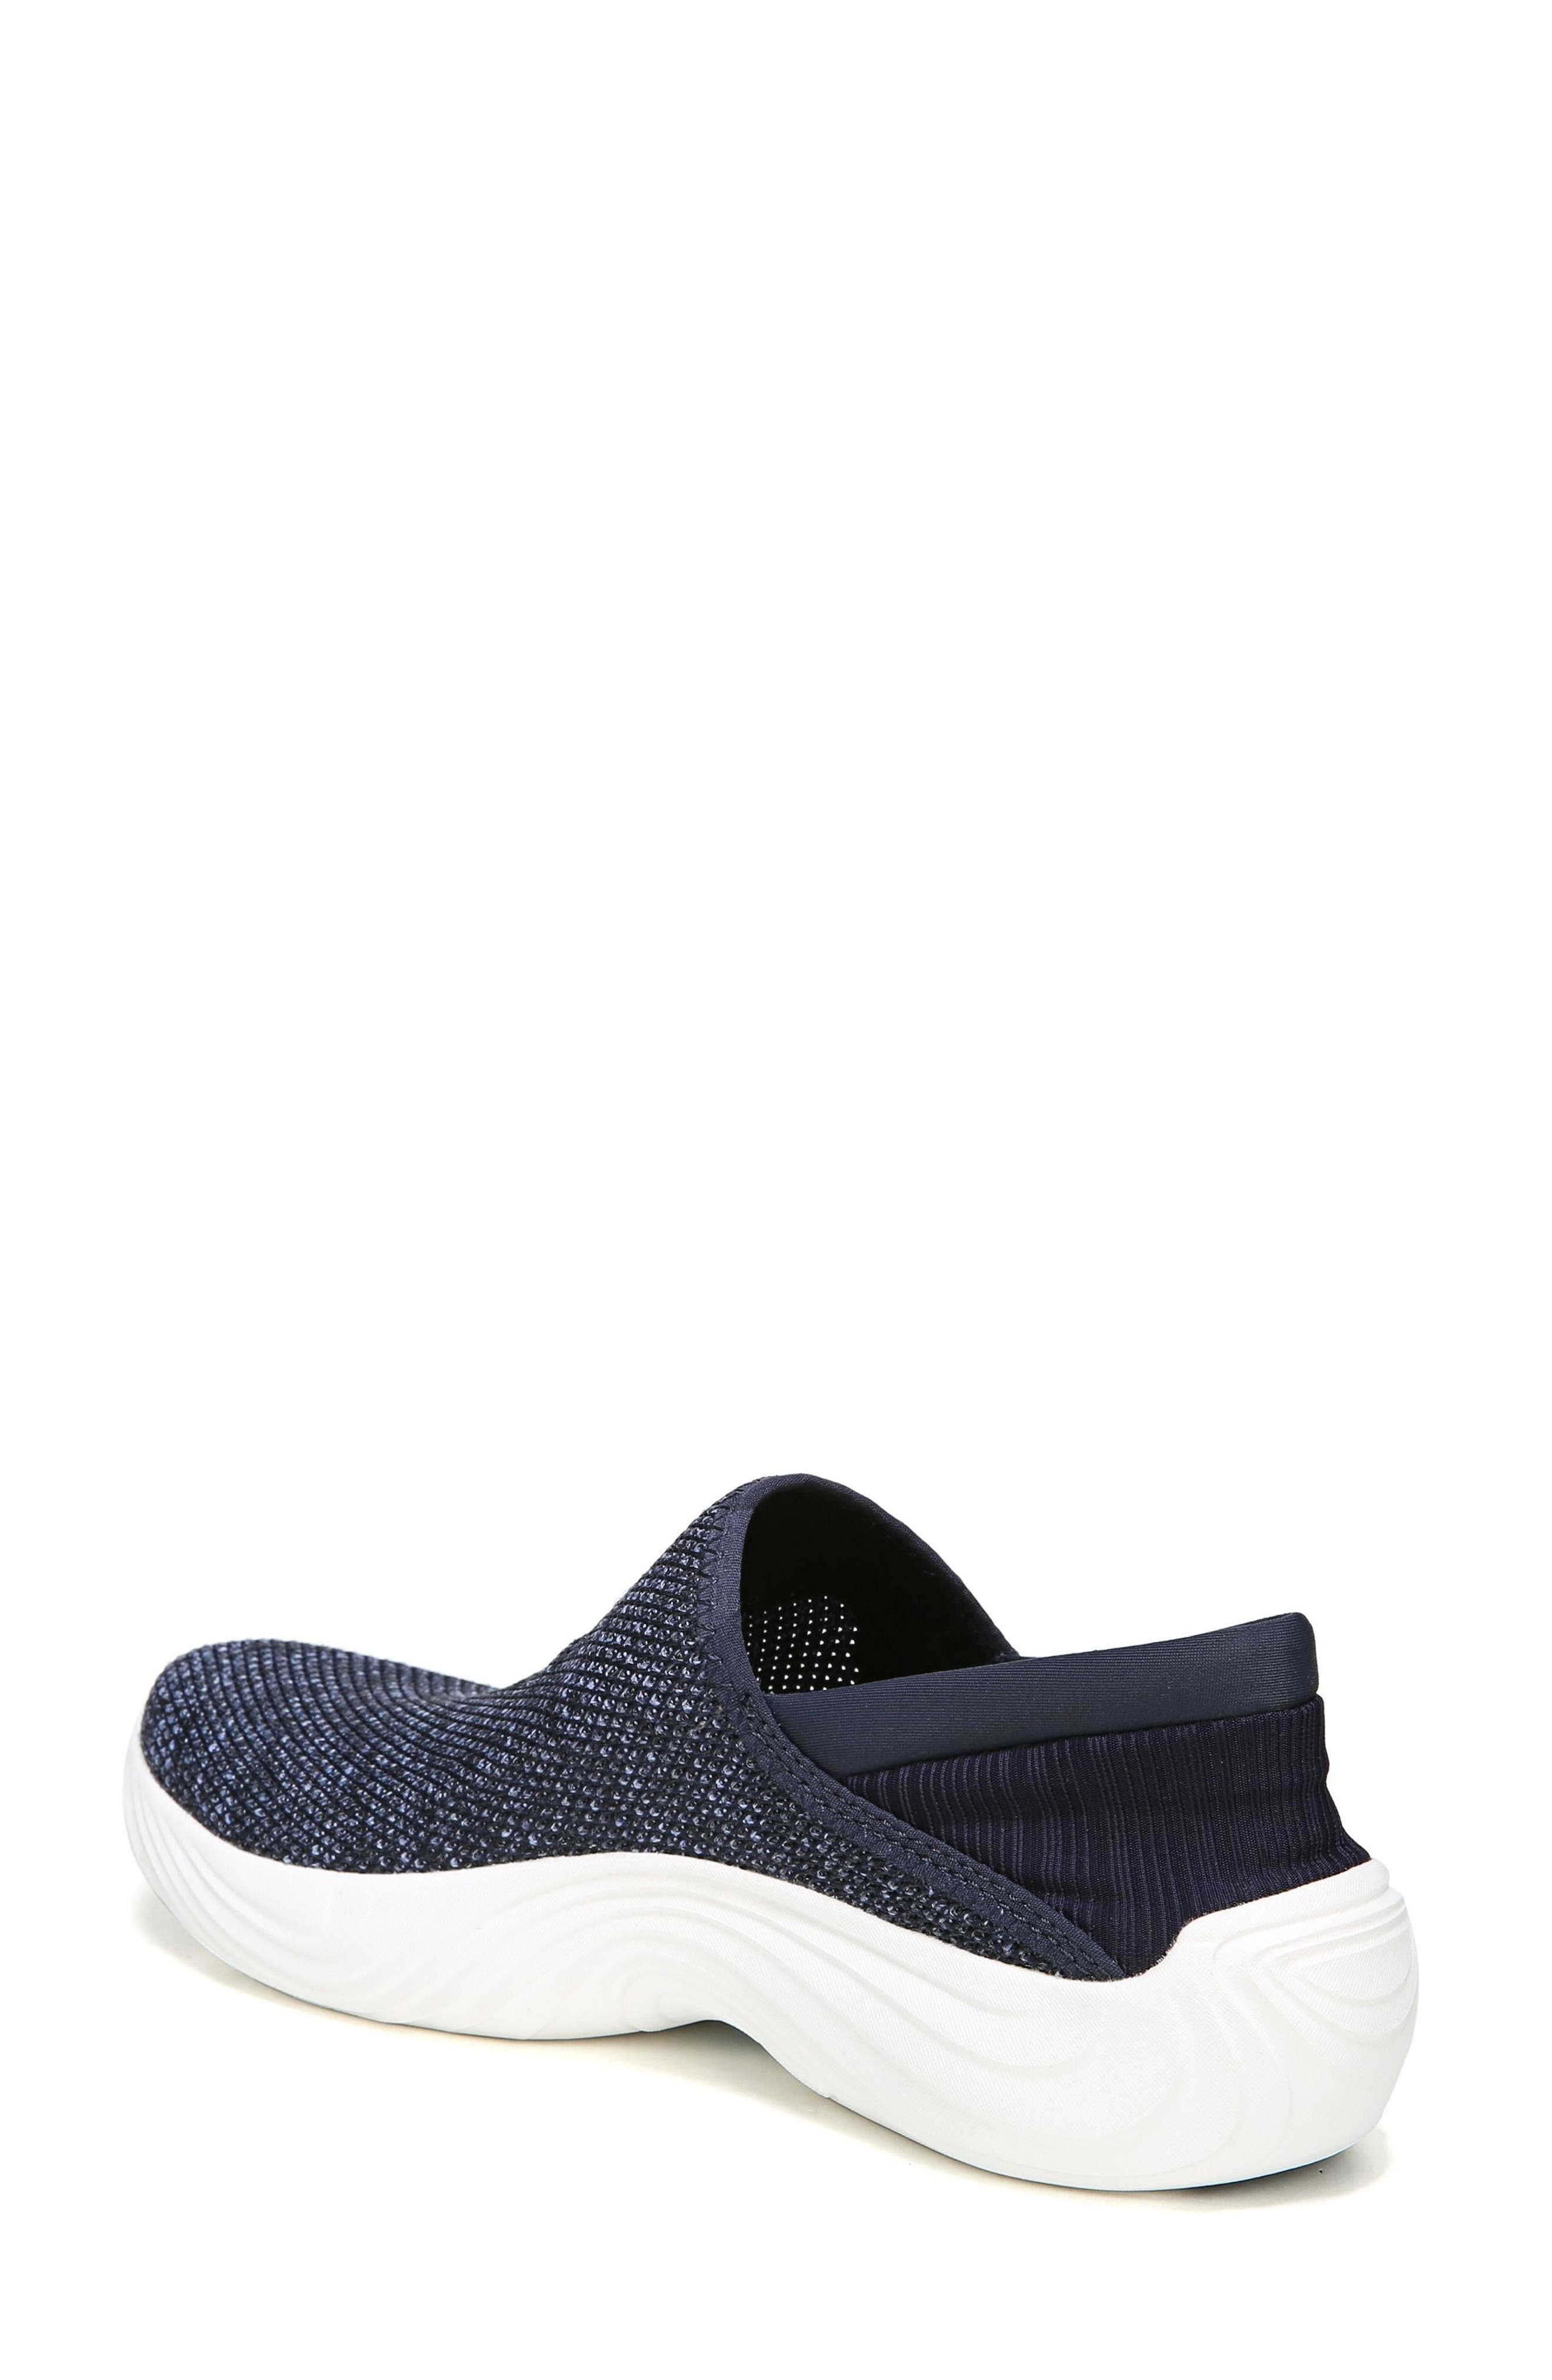 Topaz Slip-On Sneaker,                             Alternate thumbnail 2, color,                             Navy Fabric